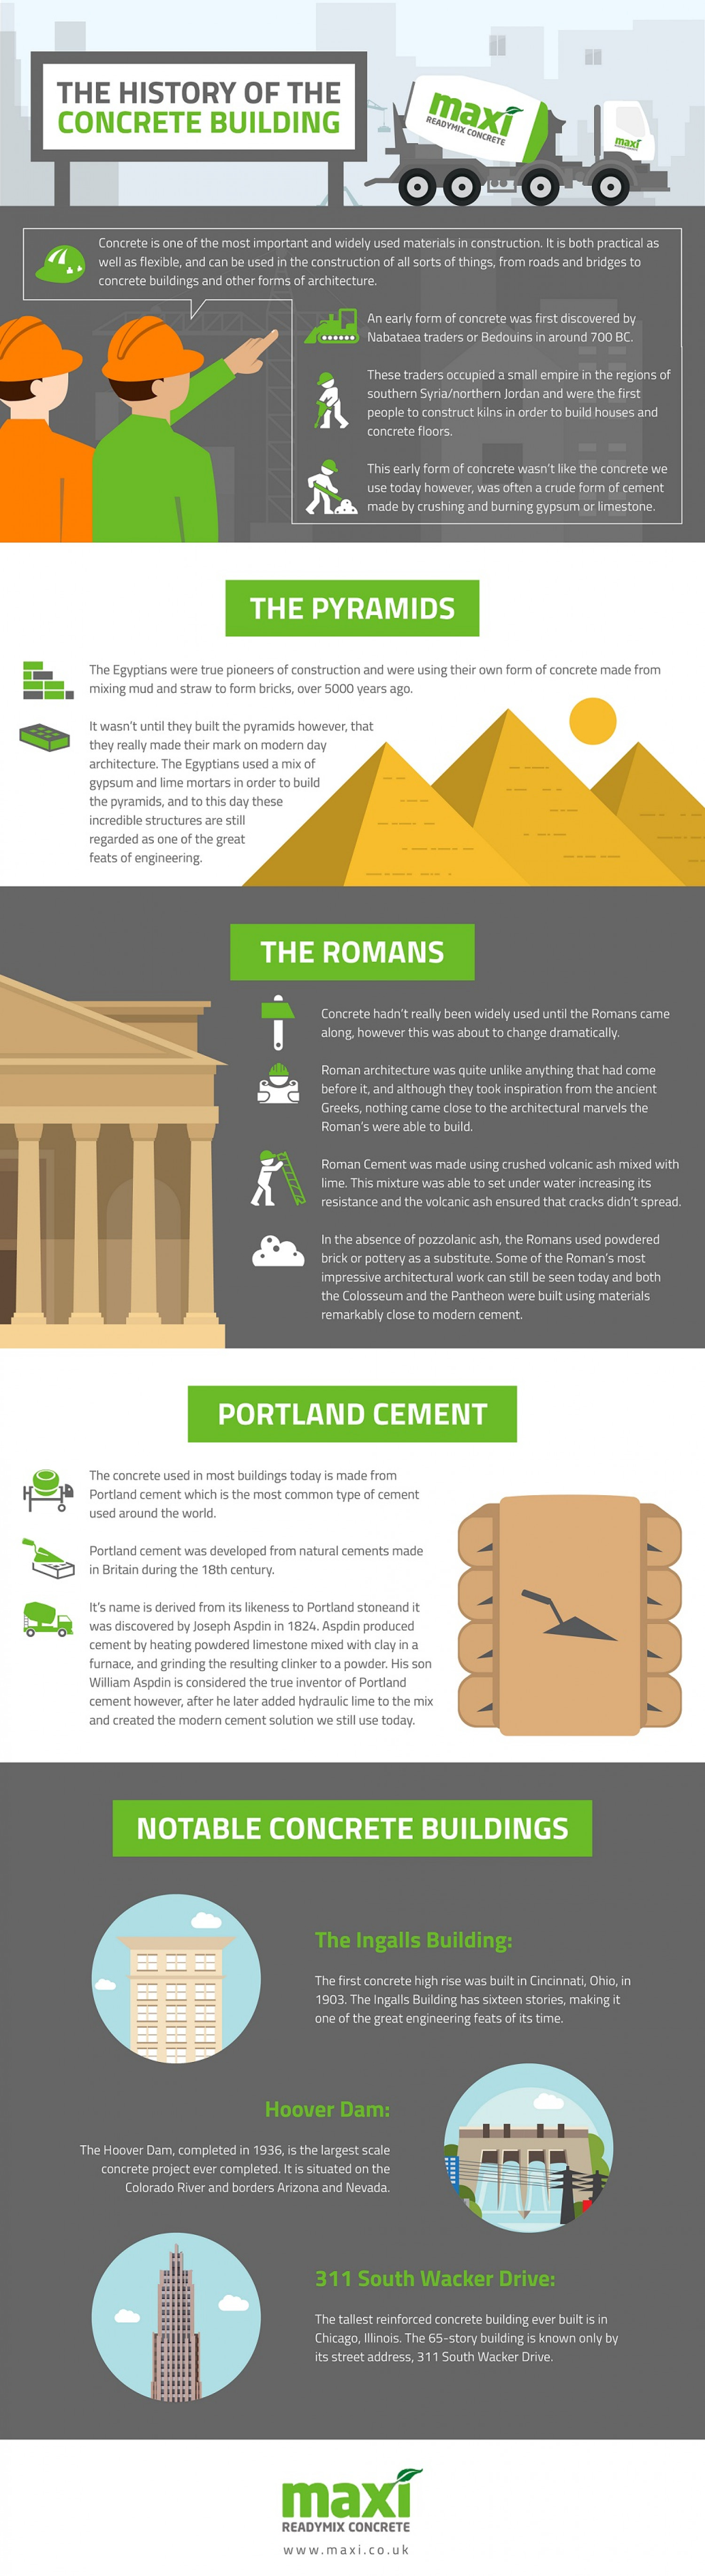 A history of the Concrete Building Infographic